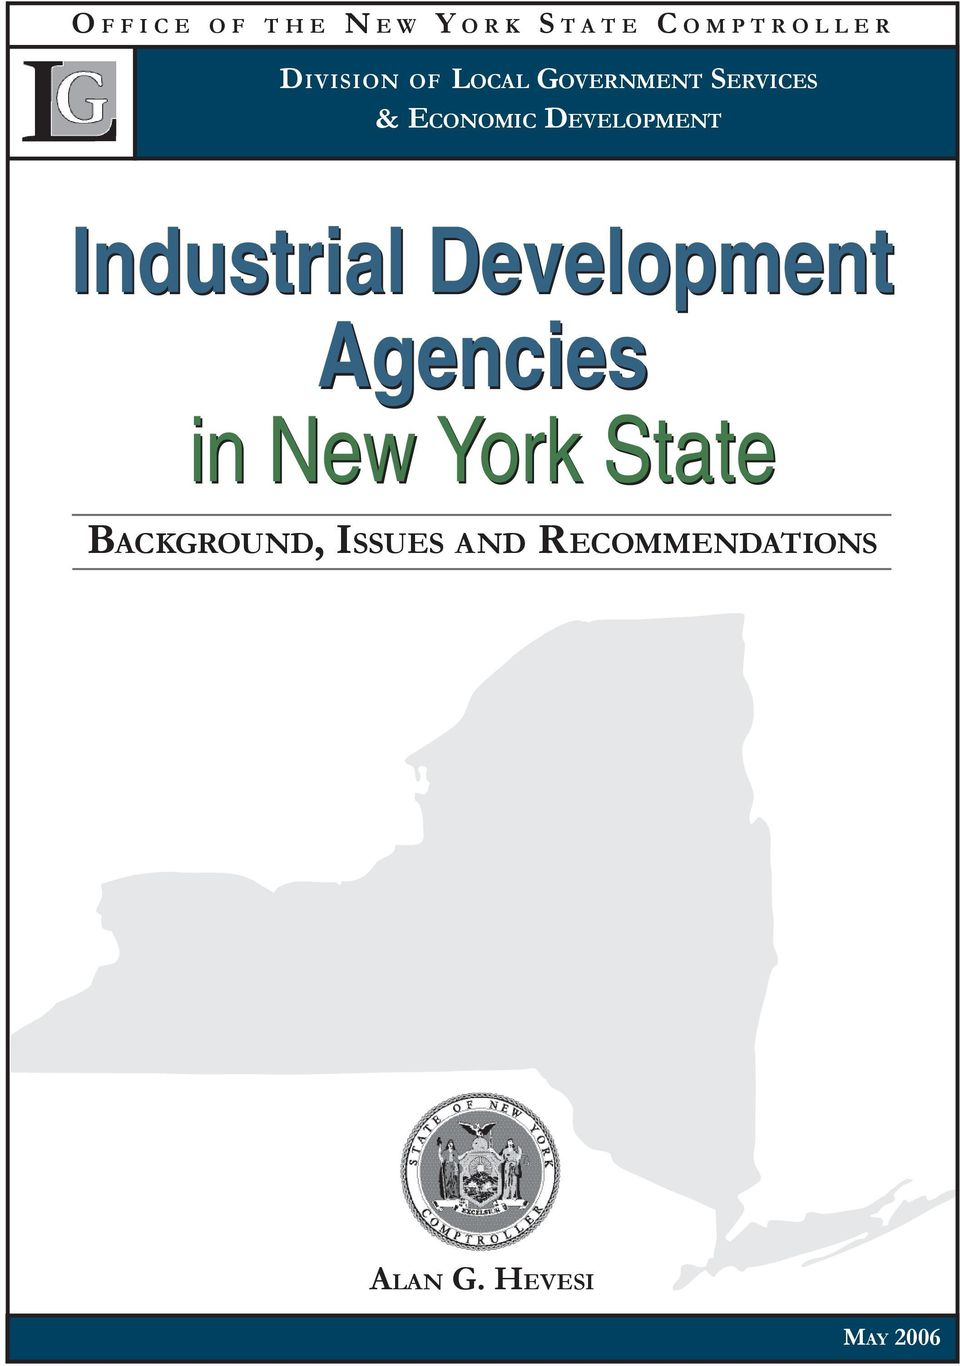 Industrial Development Agencies in New York State